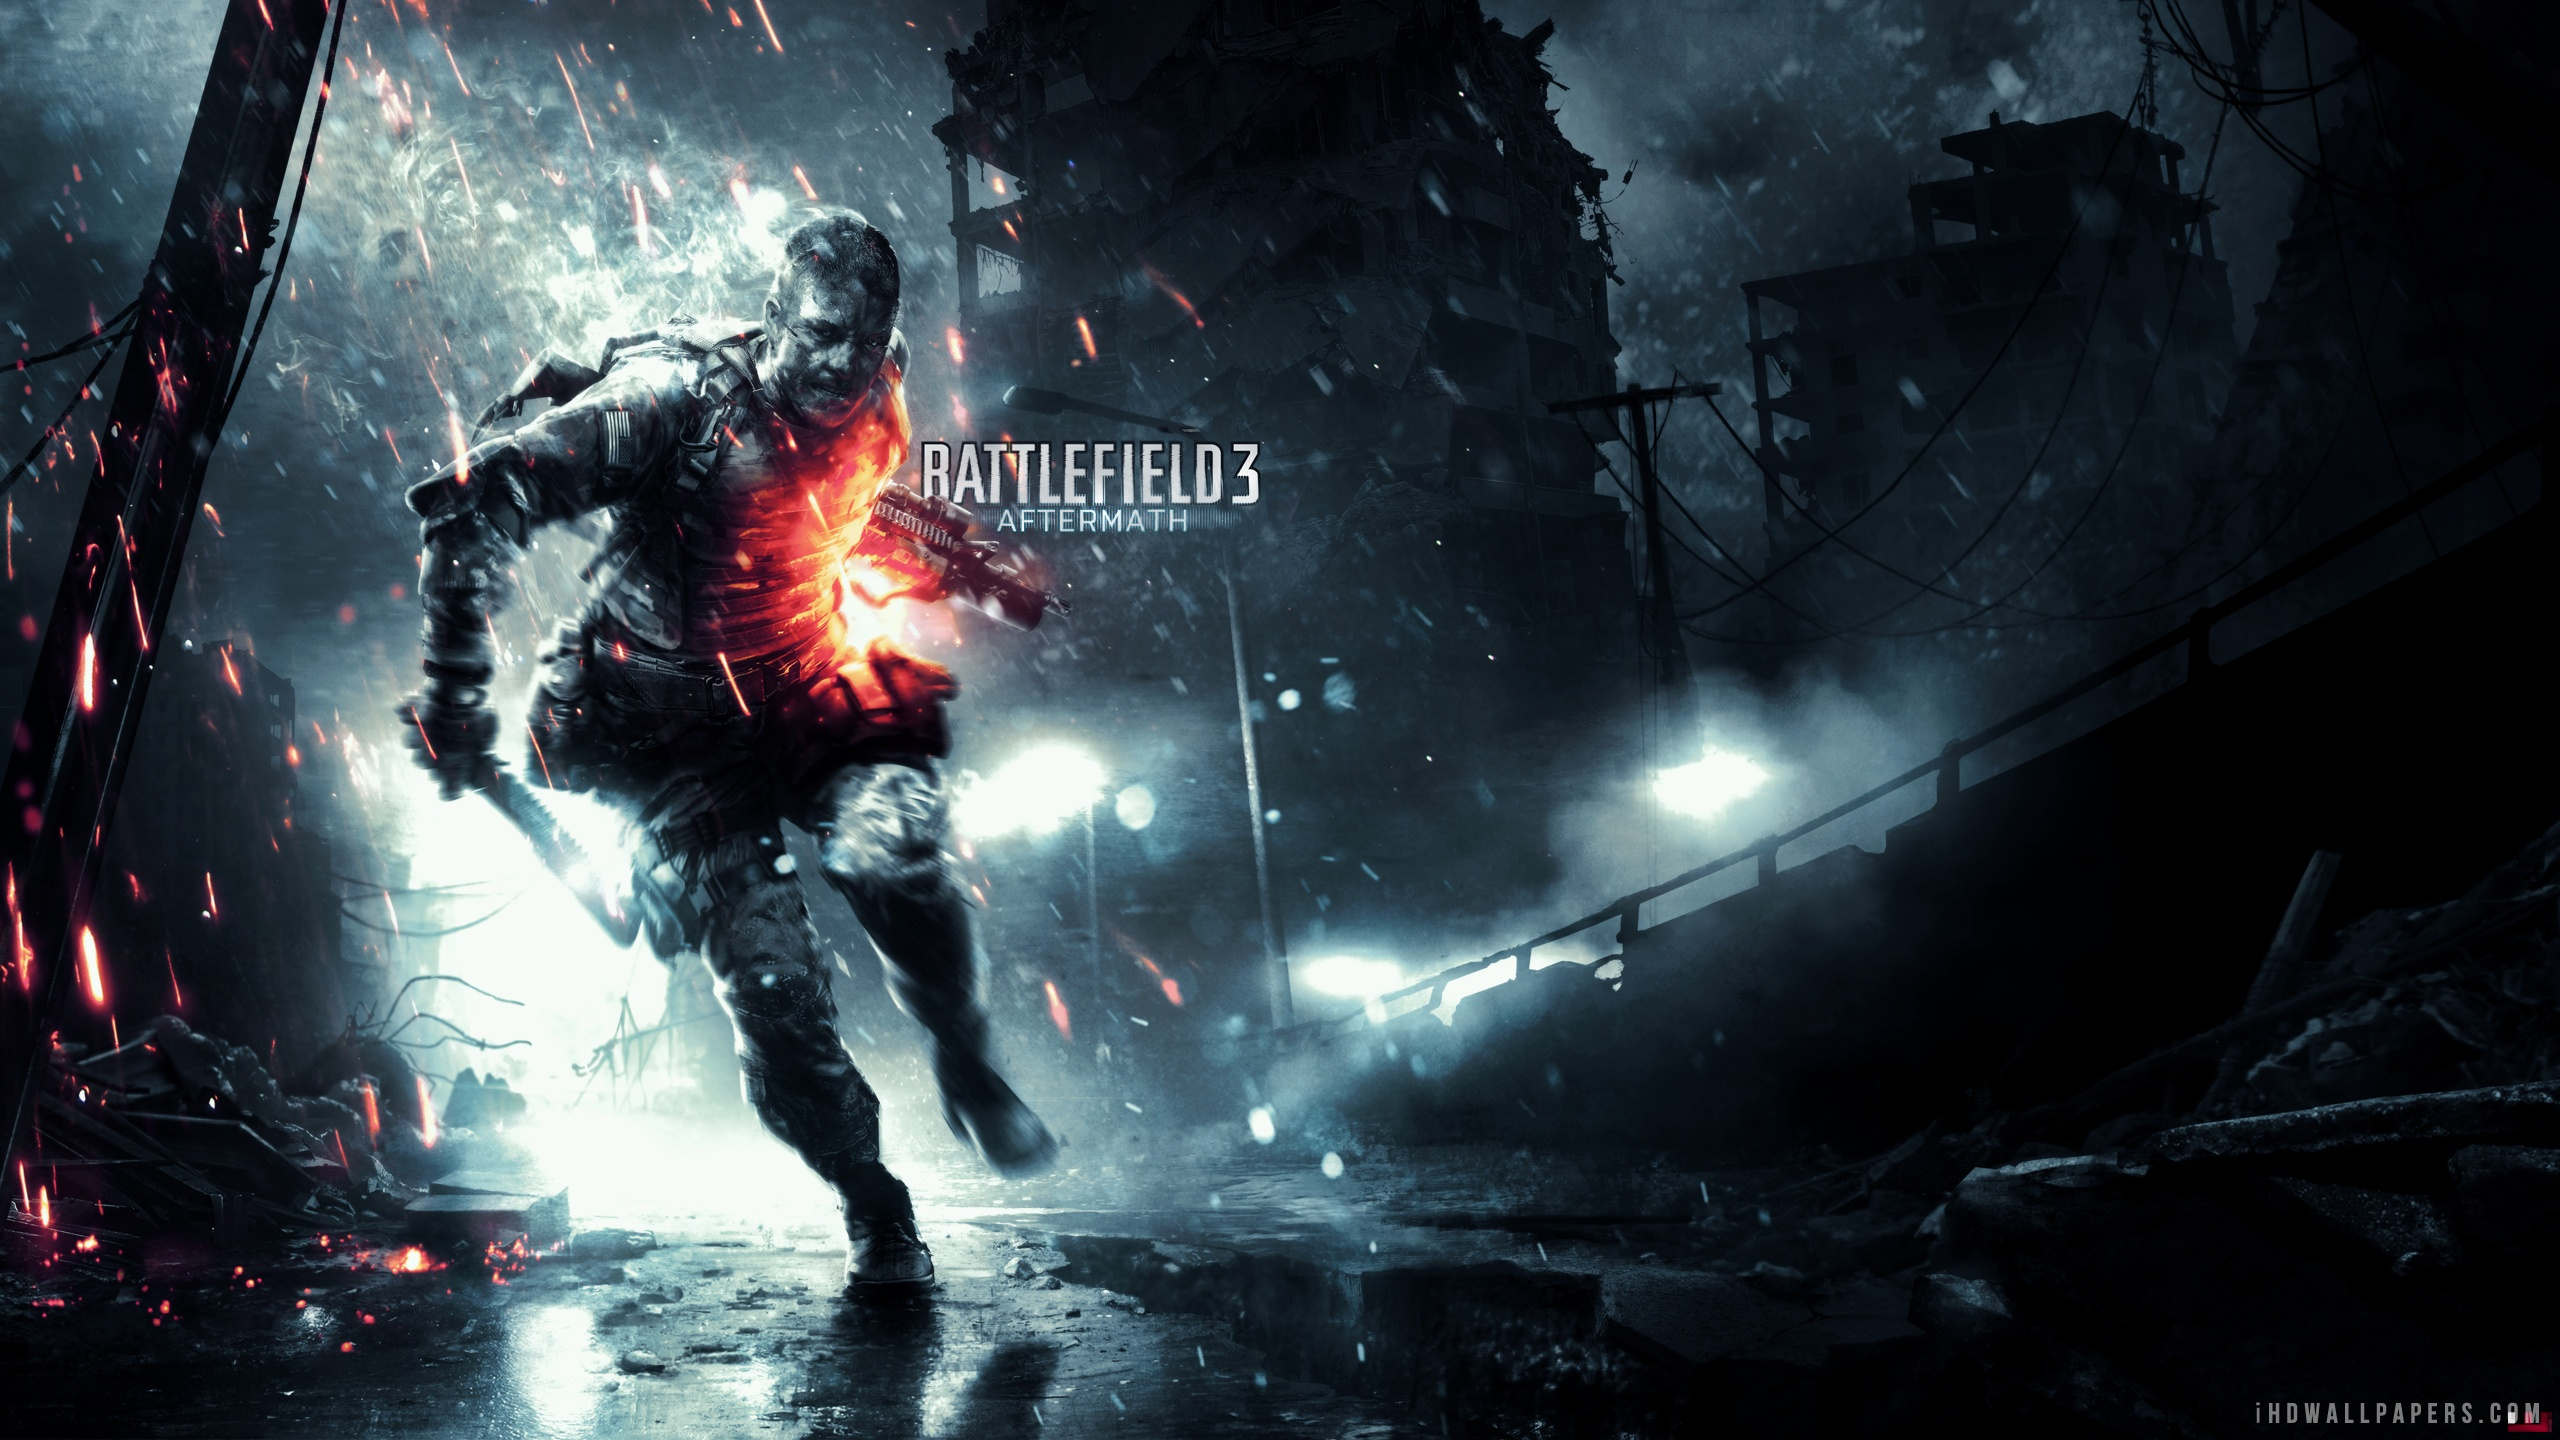 46 battlefield 4 wallpaper 2560x1440 on wallpapersafari - Bf4 wallpaper ...